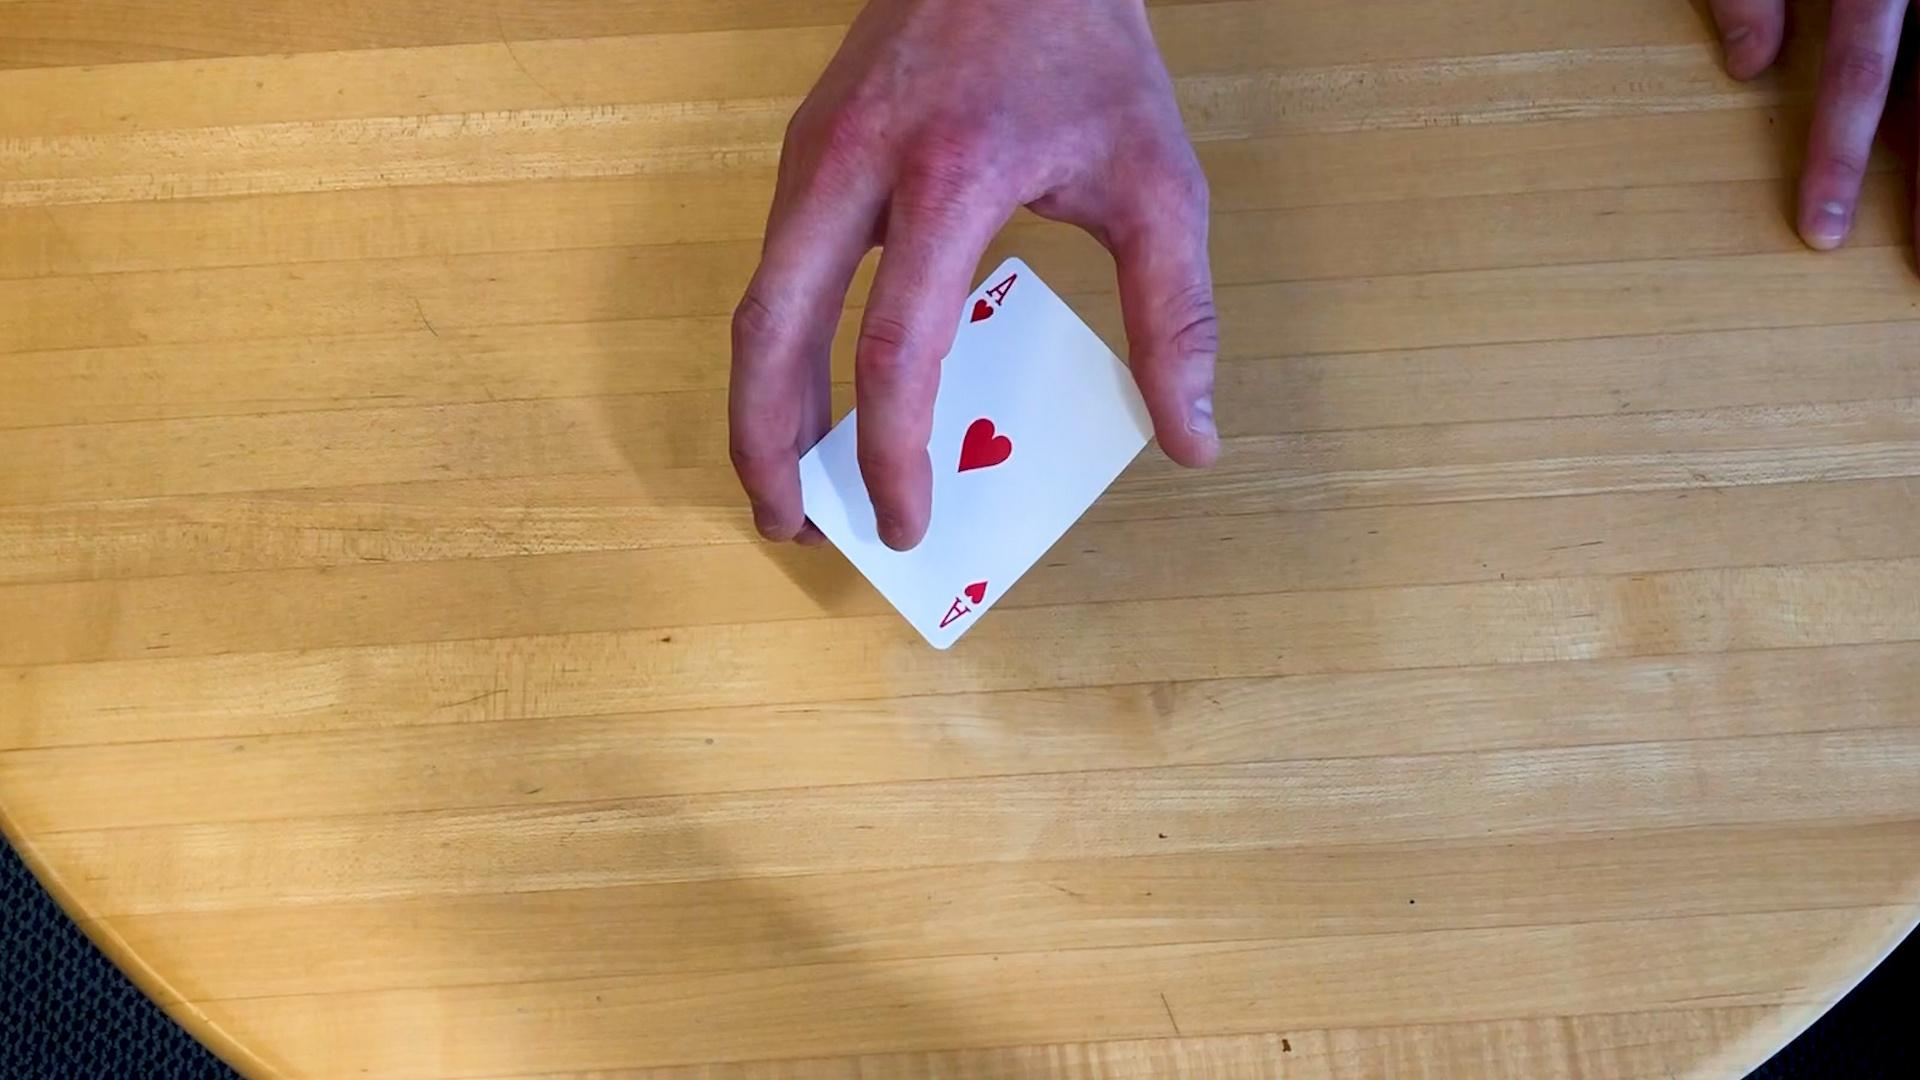 The Science Behind This Slight of Hand